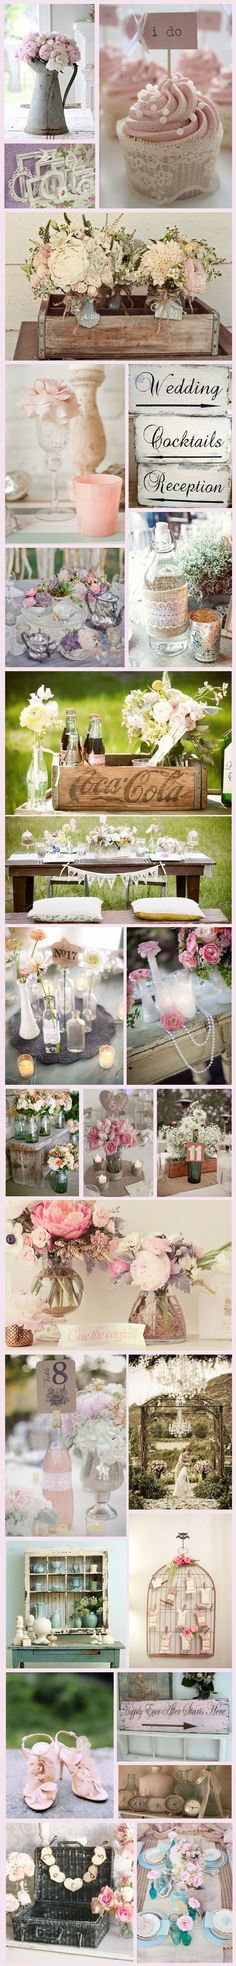 Shabby Chic Inspiration Board- I love everything on this website